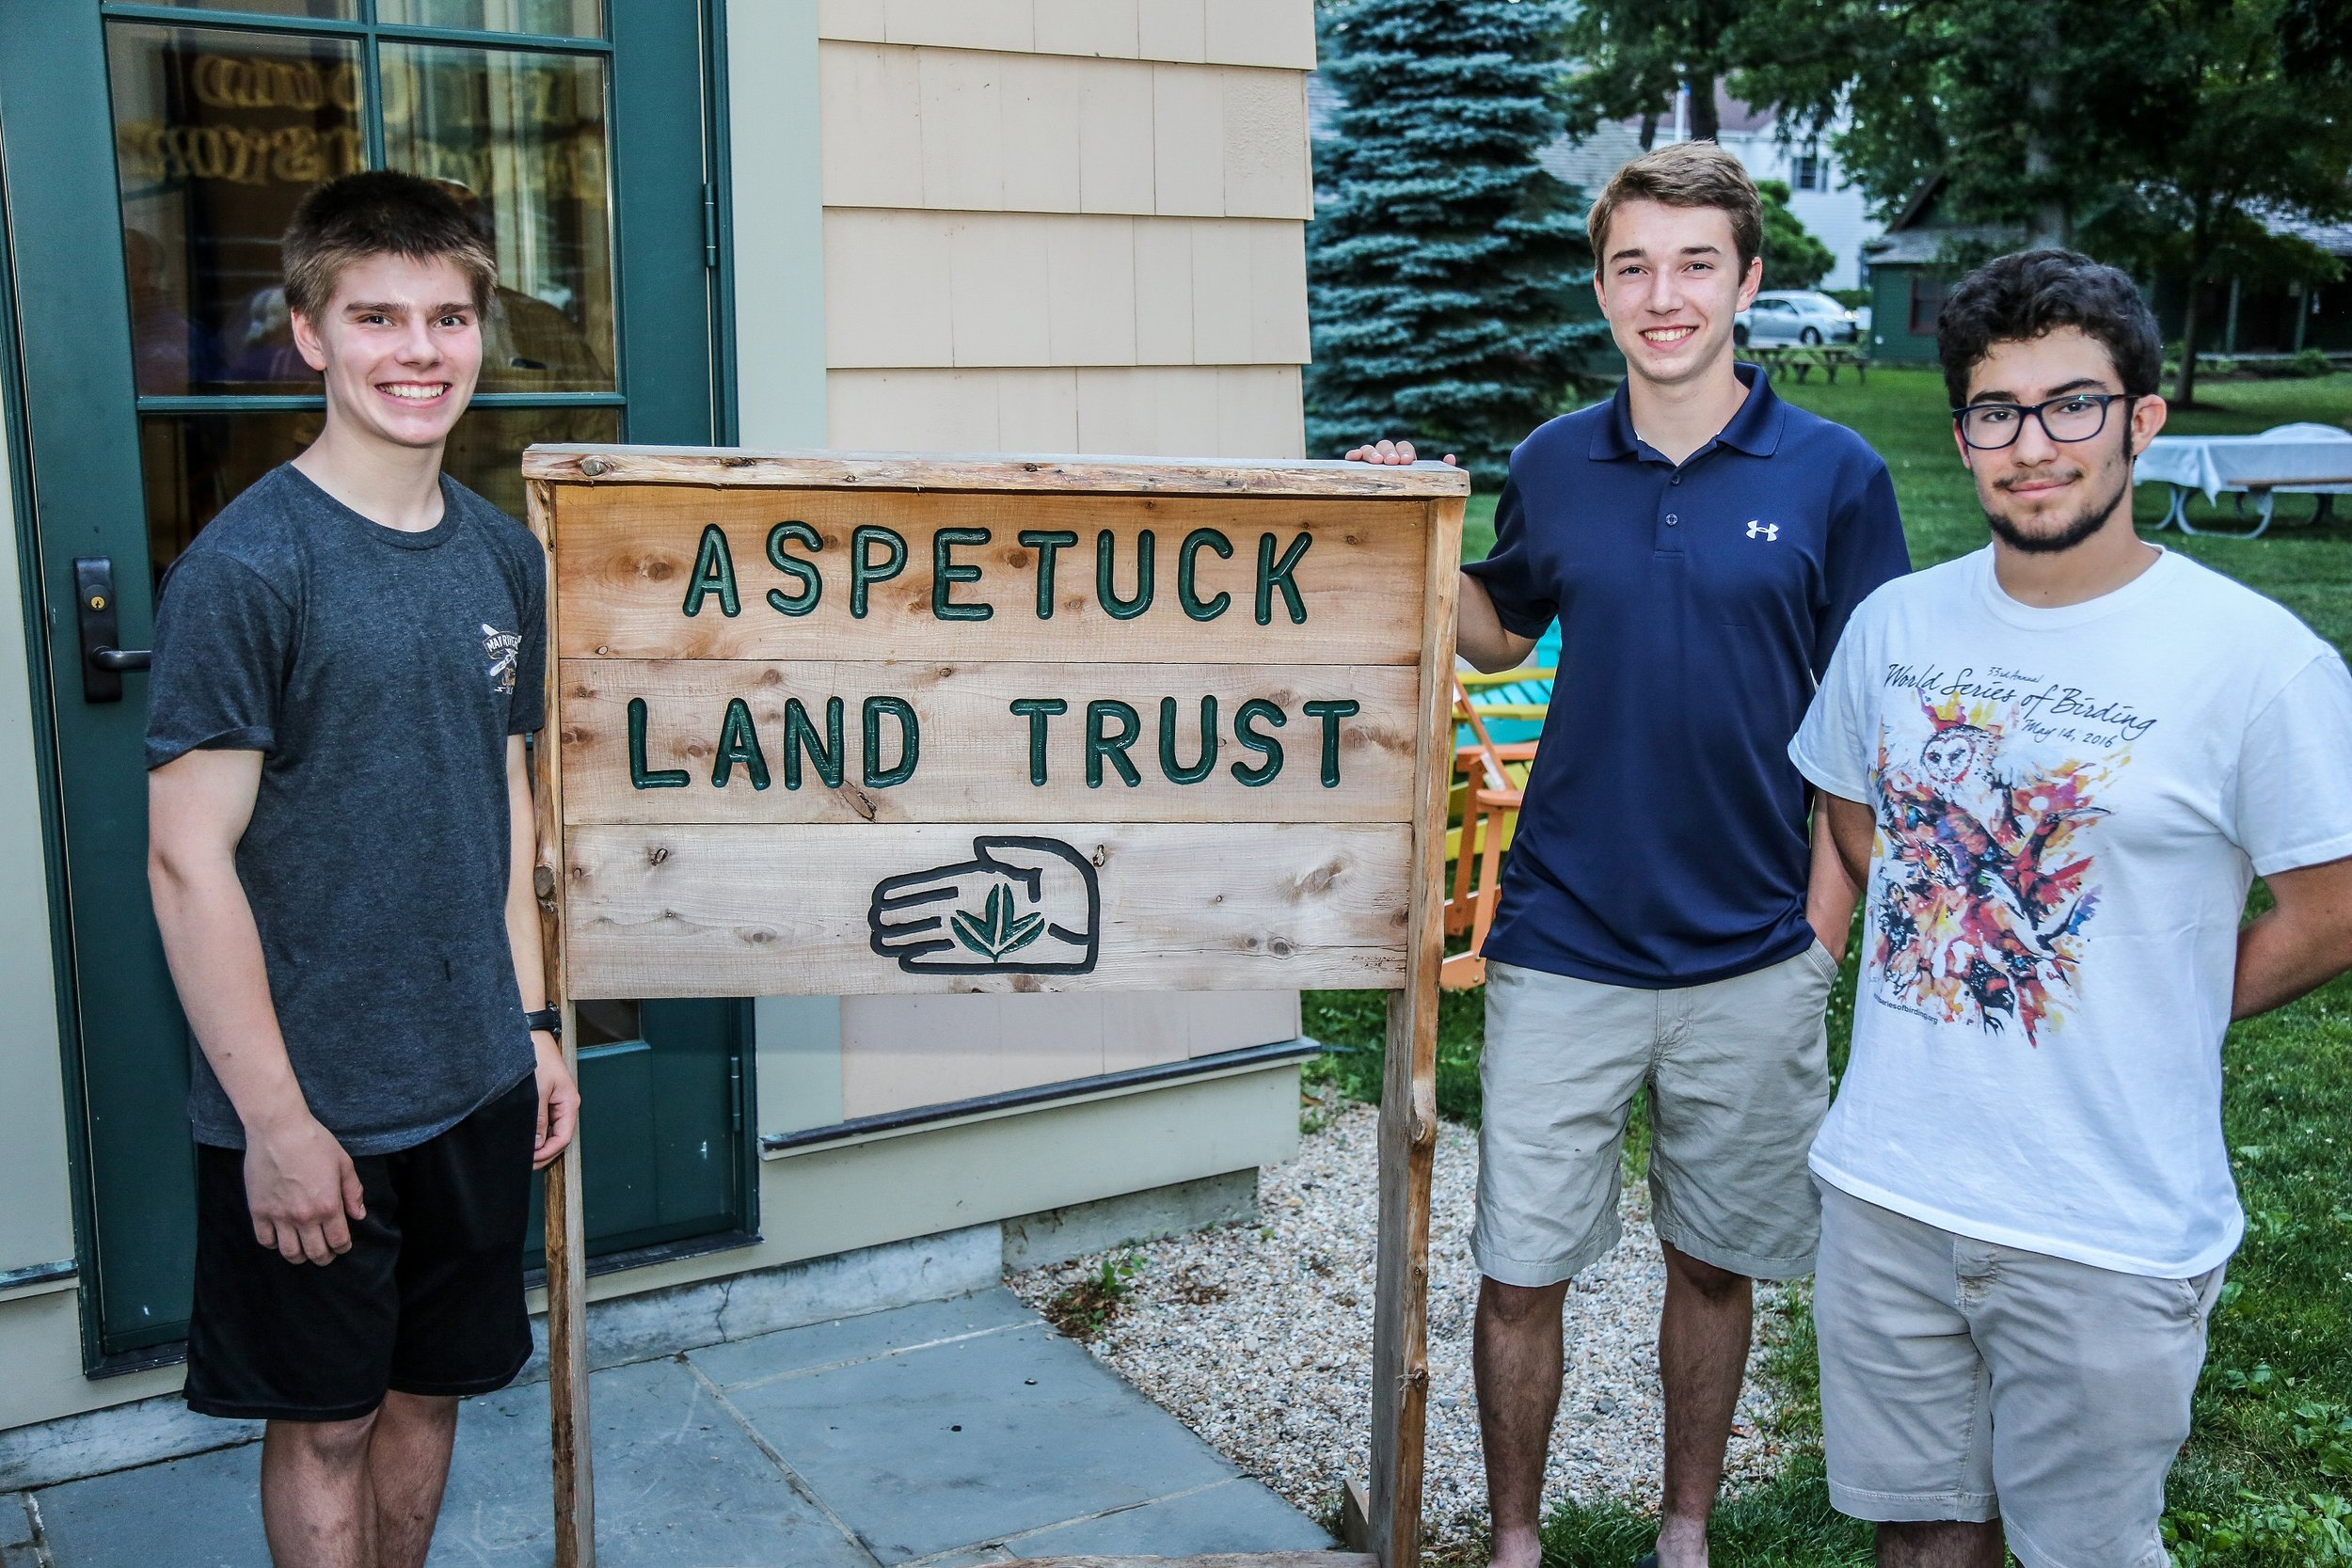 This image is from last year's Annual Meeting, but it is a great way to close this story! Owen Harlacker, Jackson Hemphill, Jory Teltser, members of Aspetuck Land Trust's Land Management Committee.